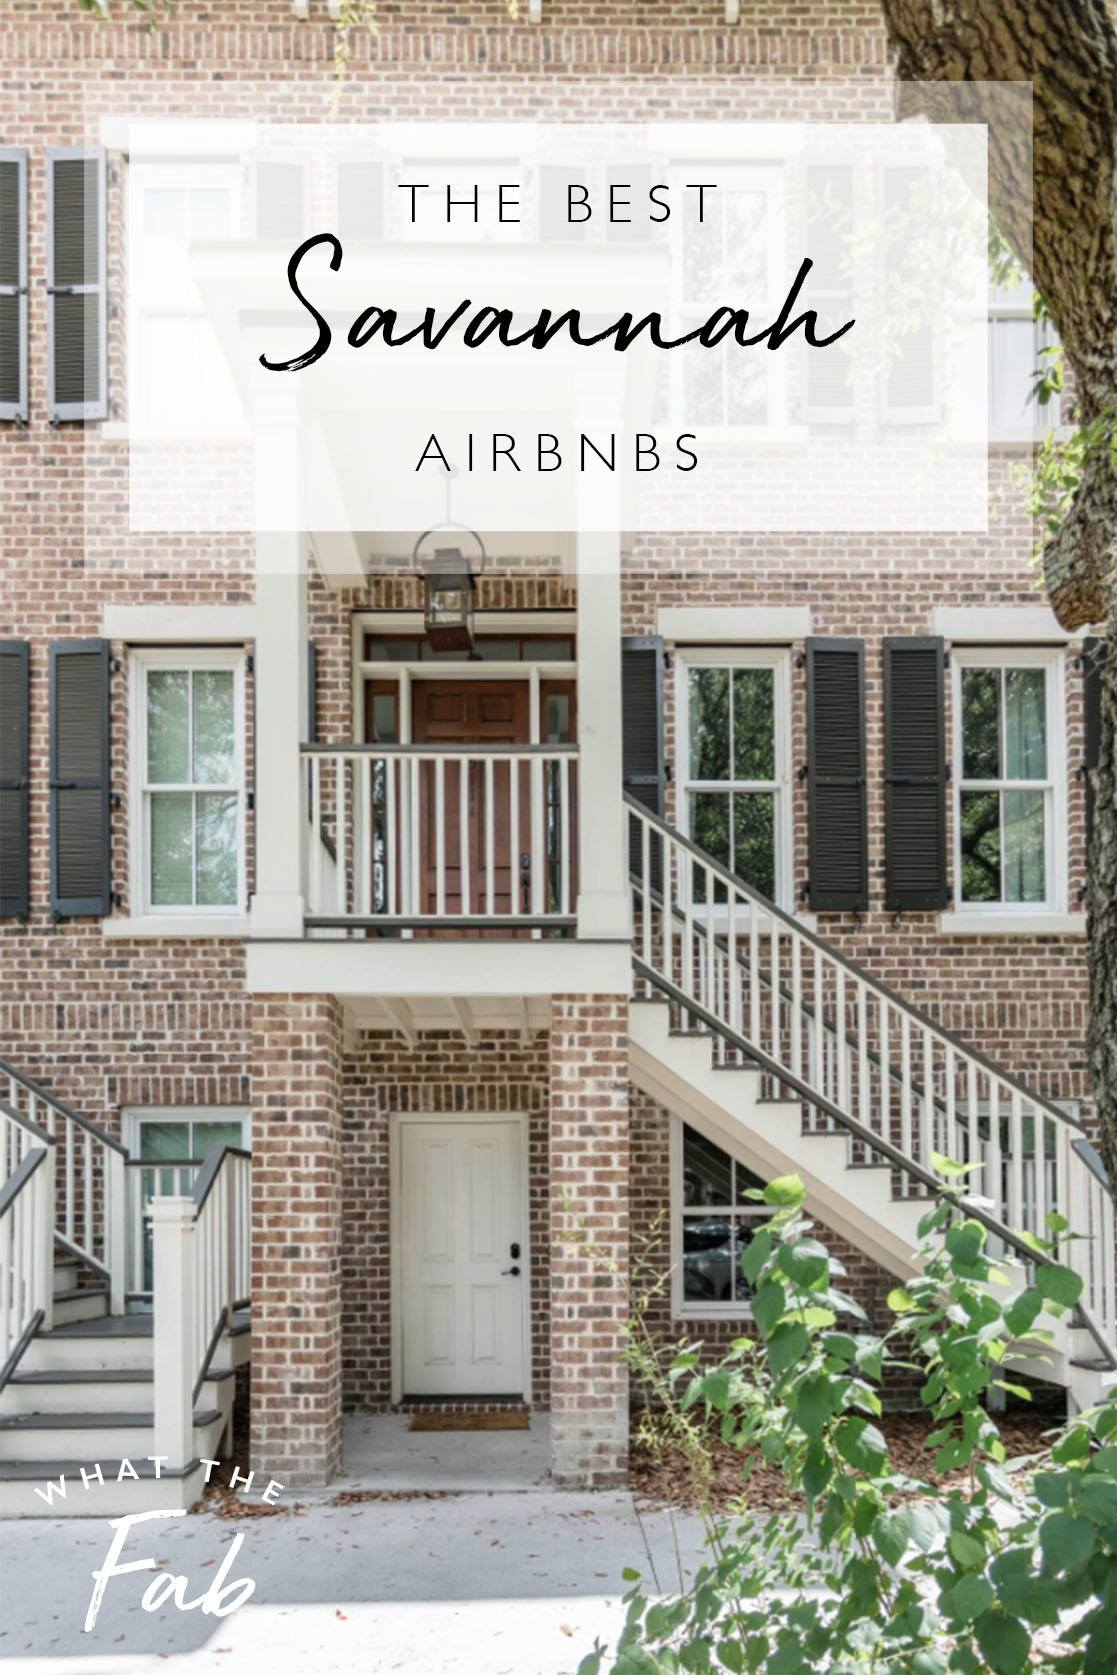 The best Savannah Airbnbs, by Travel Blogger What The Fab